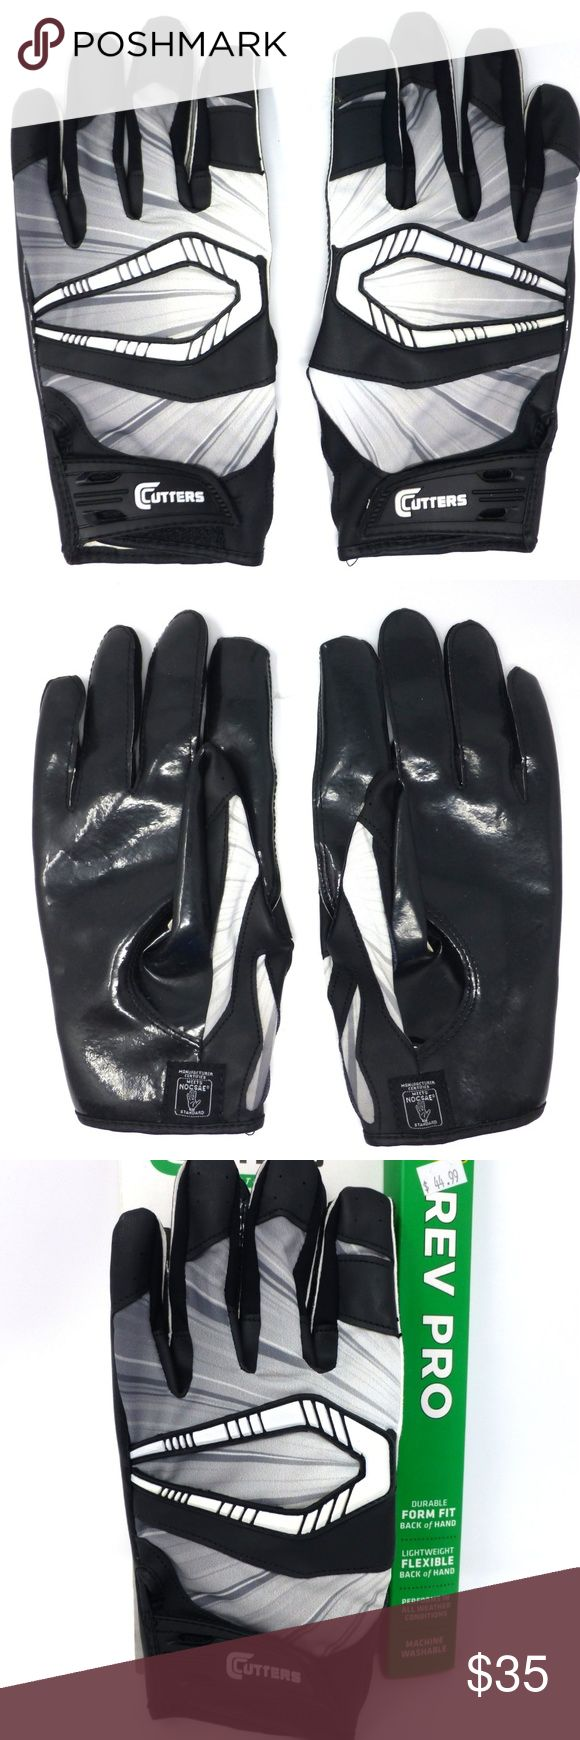 Cutters Rev Pro Receiver adult football gloves NWT Superior grip & protection in all weather conditions Machine wash Cutters Accessories Gloves